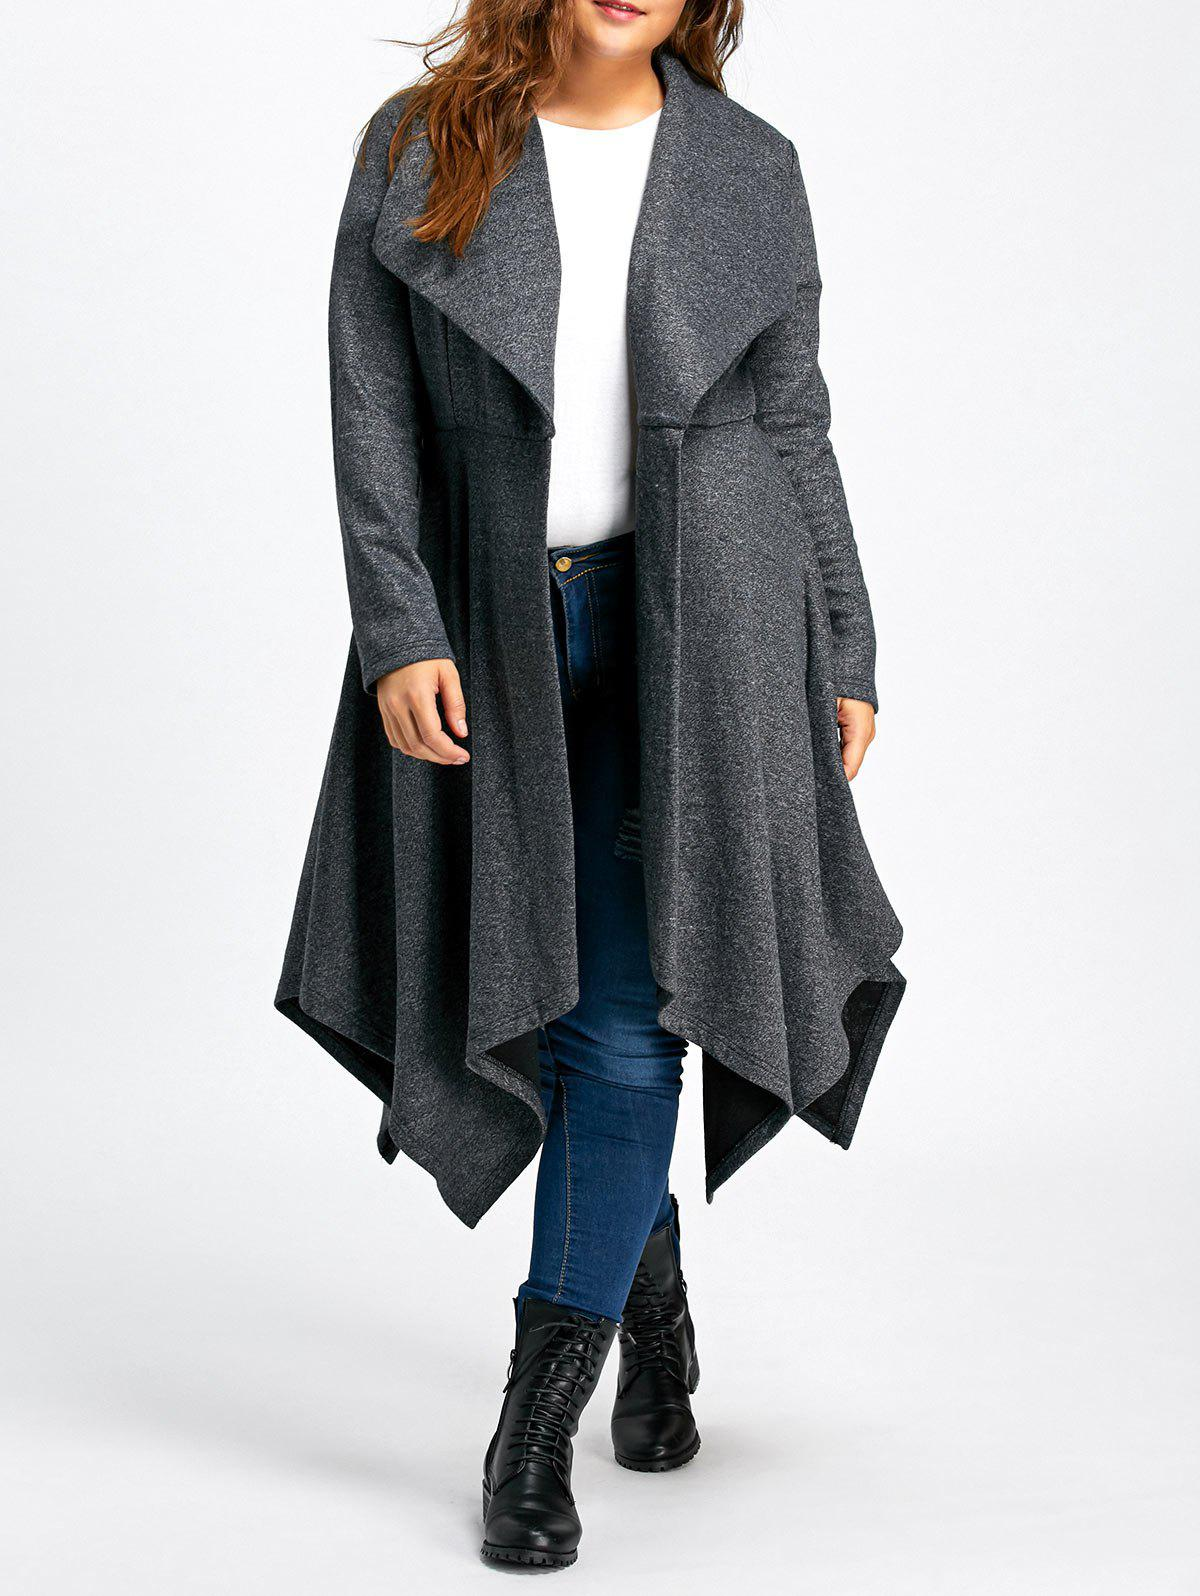 Long Handkerchief Plus Size Wool CoatWOMEN<br><br>Size: XL; Color: GRAY; Clothes Type: Wool &amp; Blends; Material: Polyester; Type: Asymmetric Length; Shirt Length: Long; Sleeve Length: Full; Collar: Turn-down Collar; Pattern Type: Solid; Style: Fashion; Season: Fall,Spring; Weight: 1.2500kg; Package Contents: 1 x Coat;